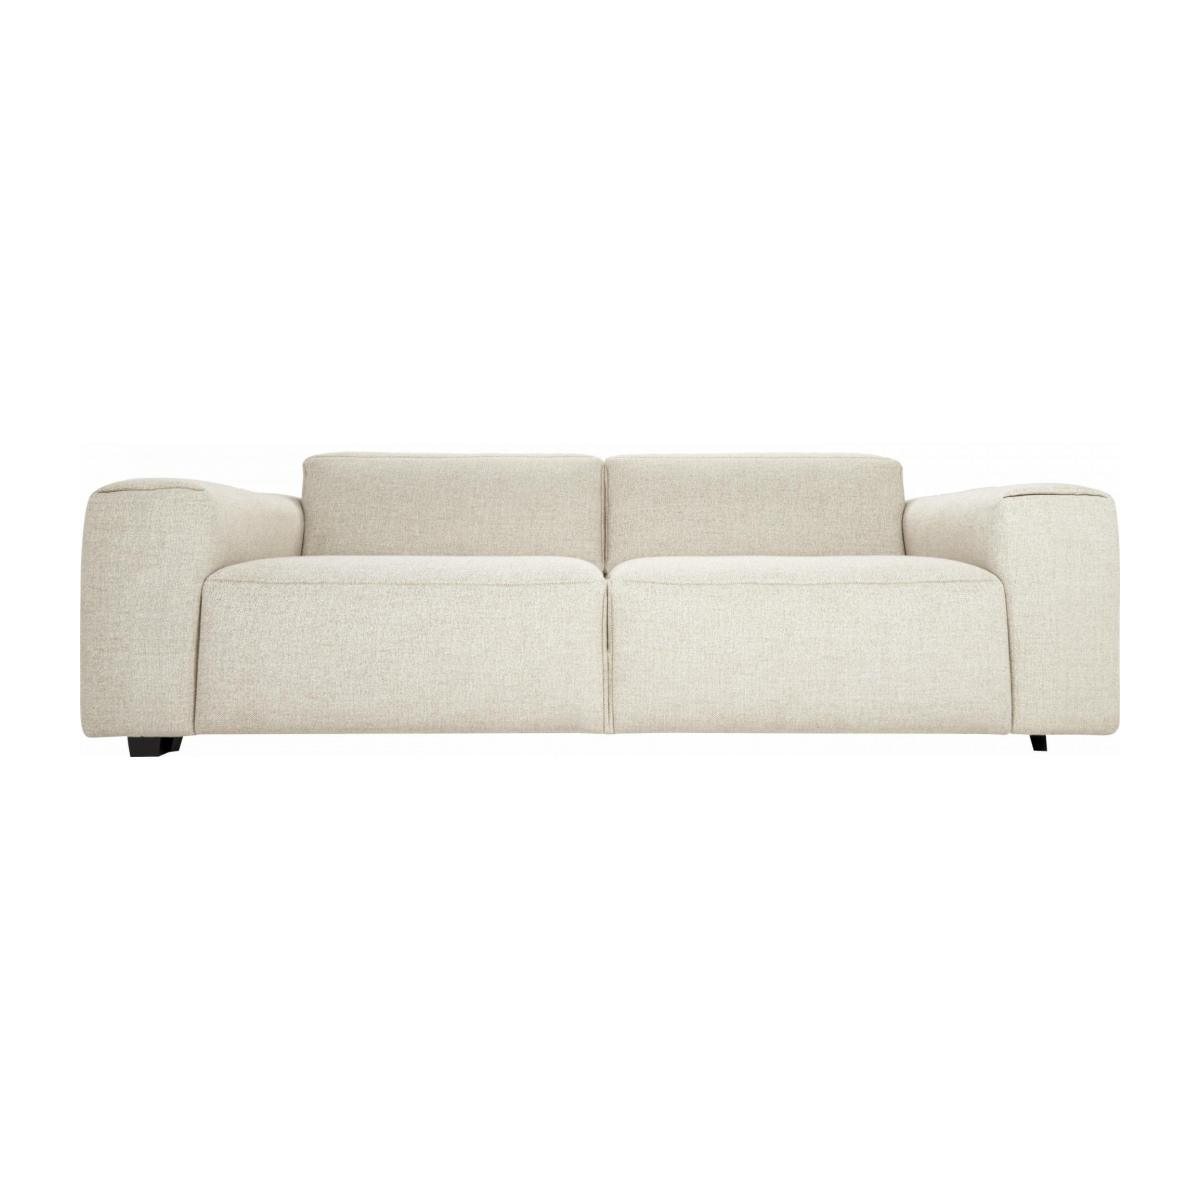 3 seater sofa in Lecce fabric, nature n°1